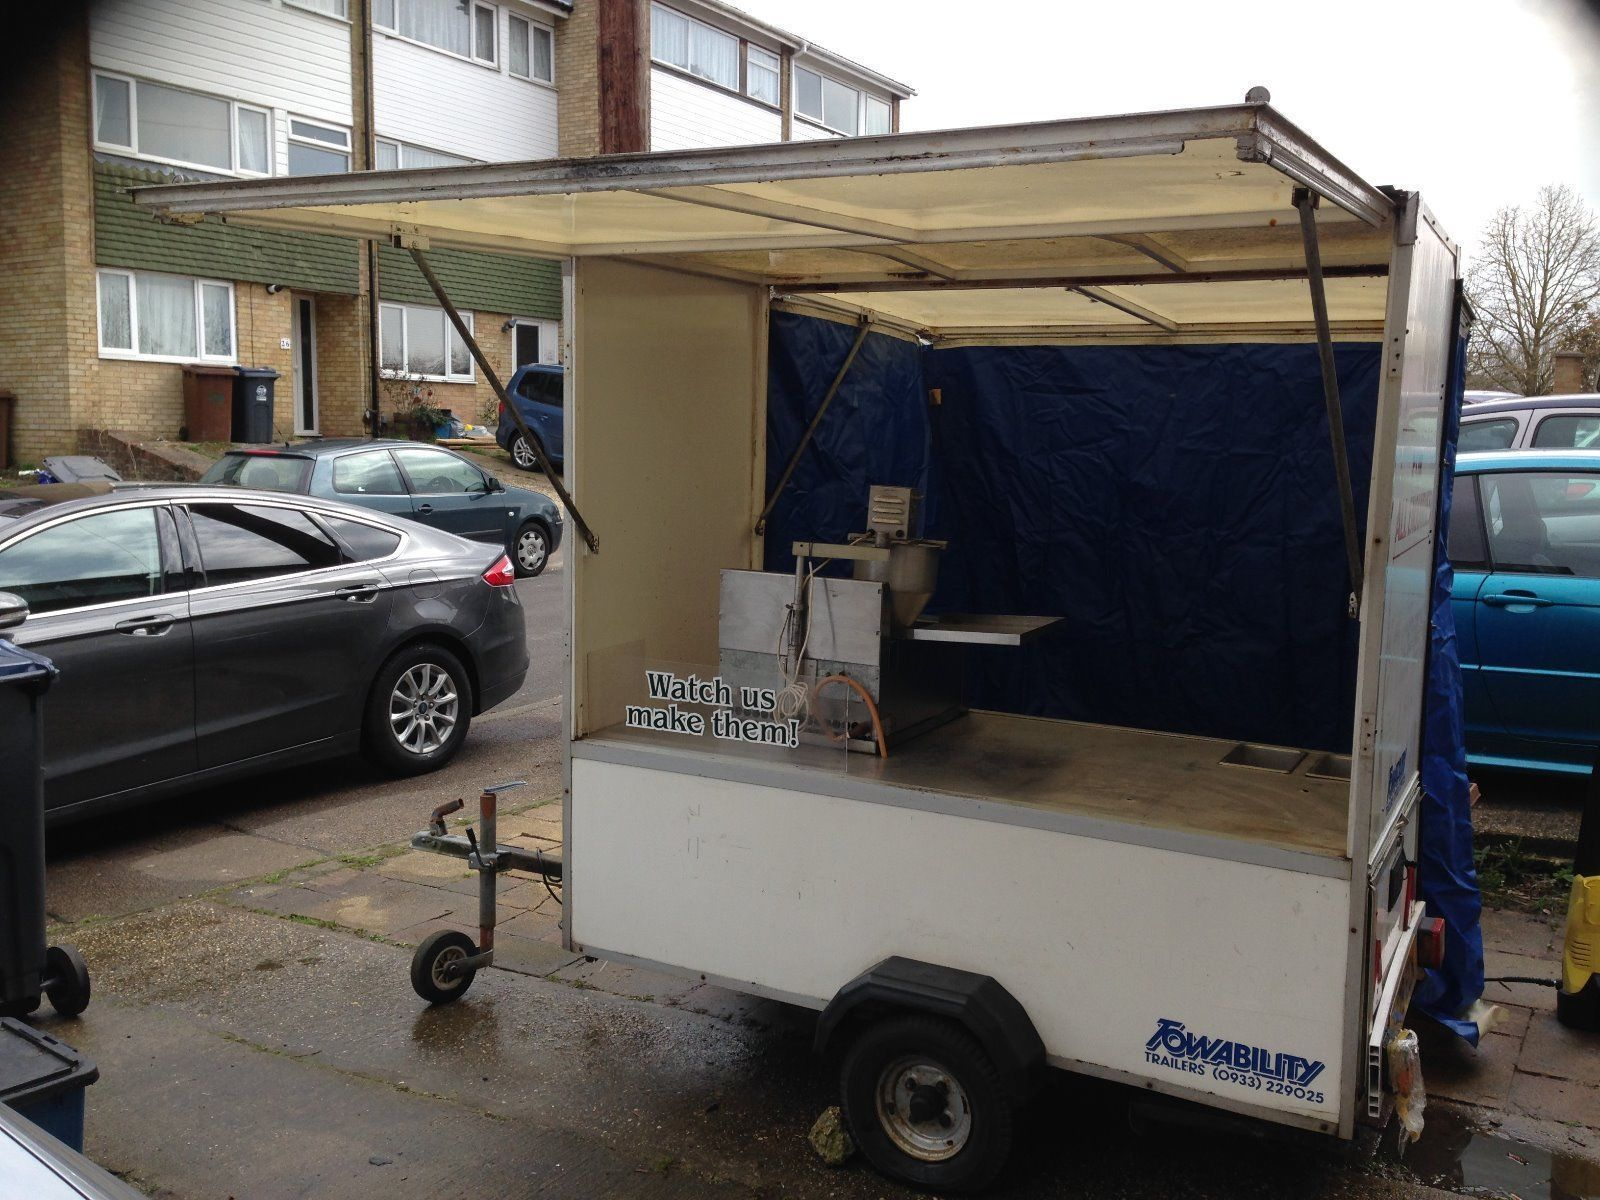 Towability Catering Trailer With Lil Orbits Semi Auto Donut Machine Catering Trailer Trailer Coffee Trailer